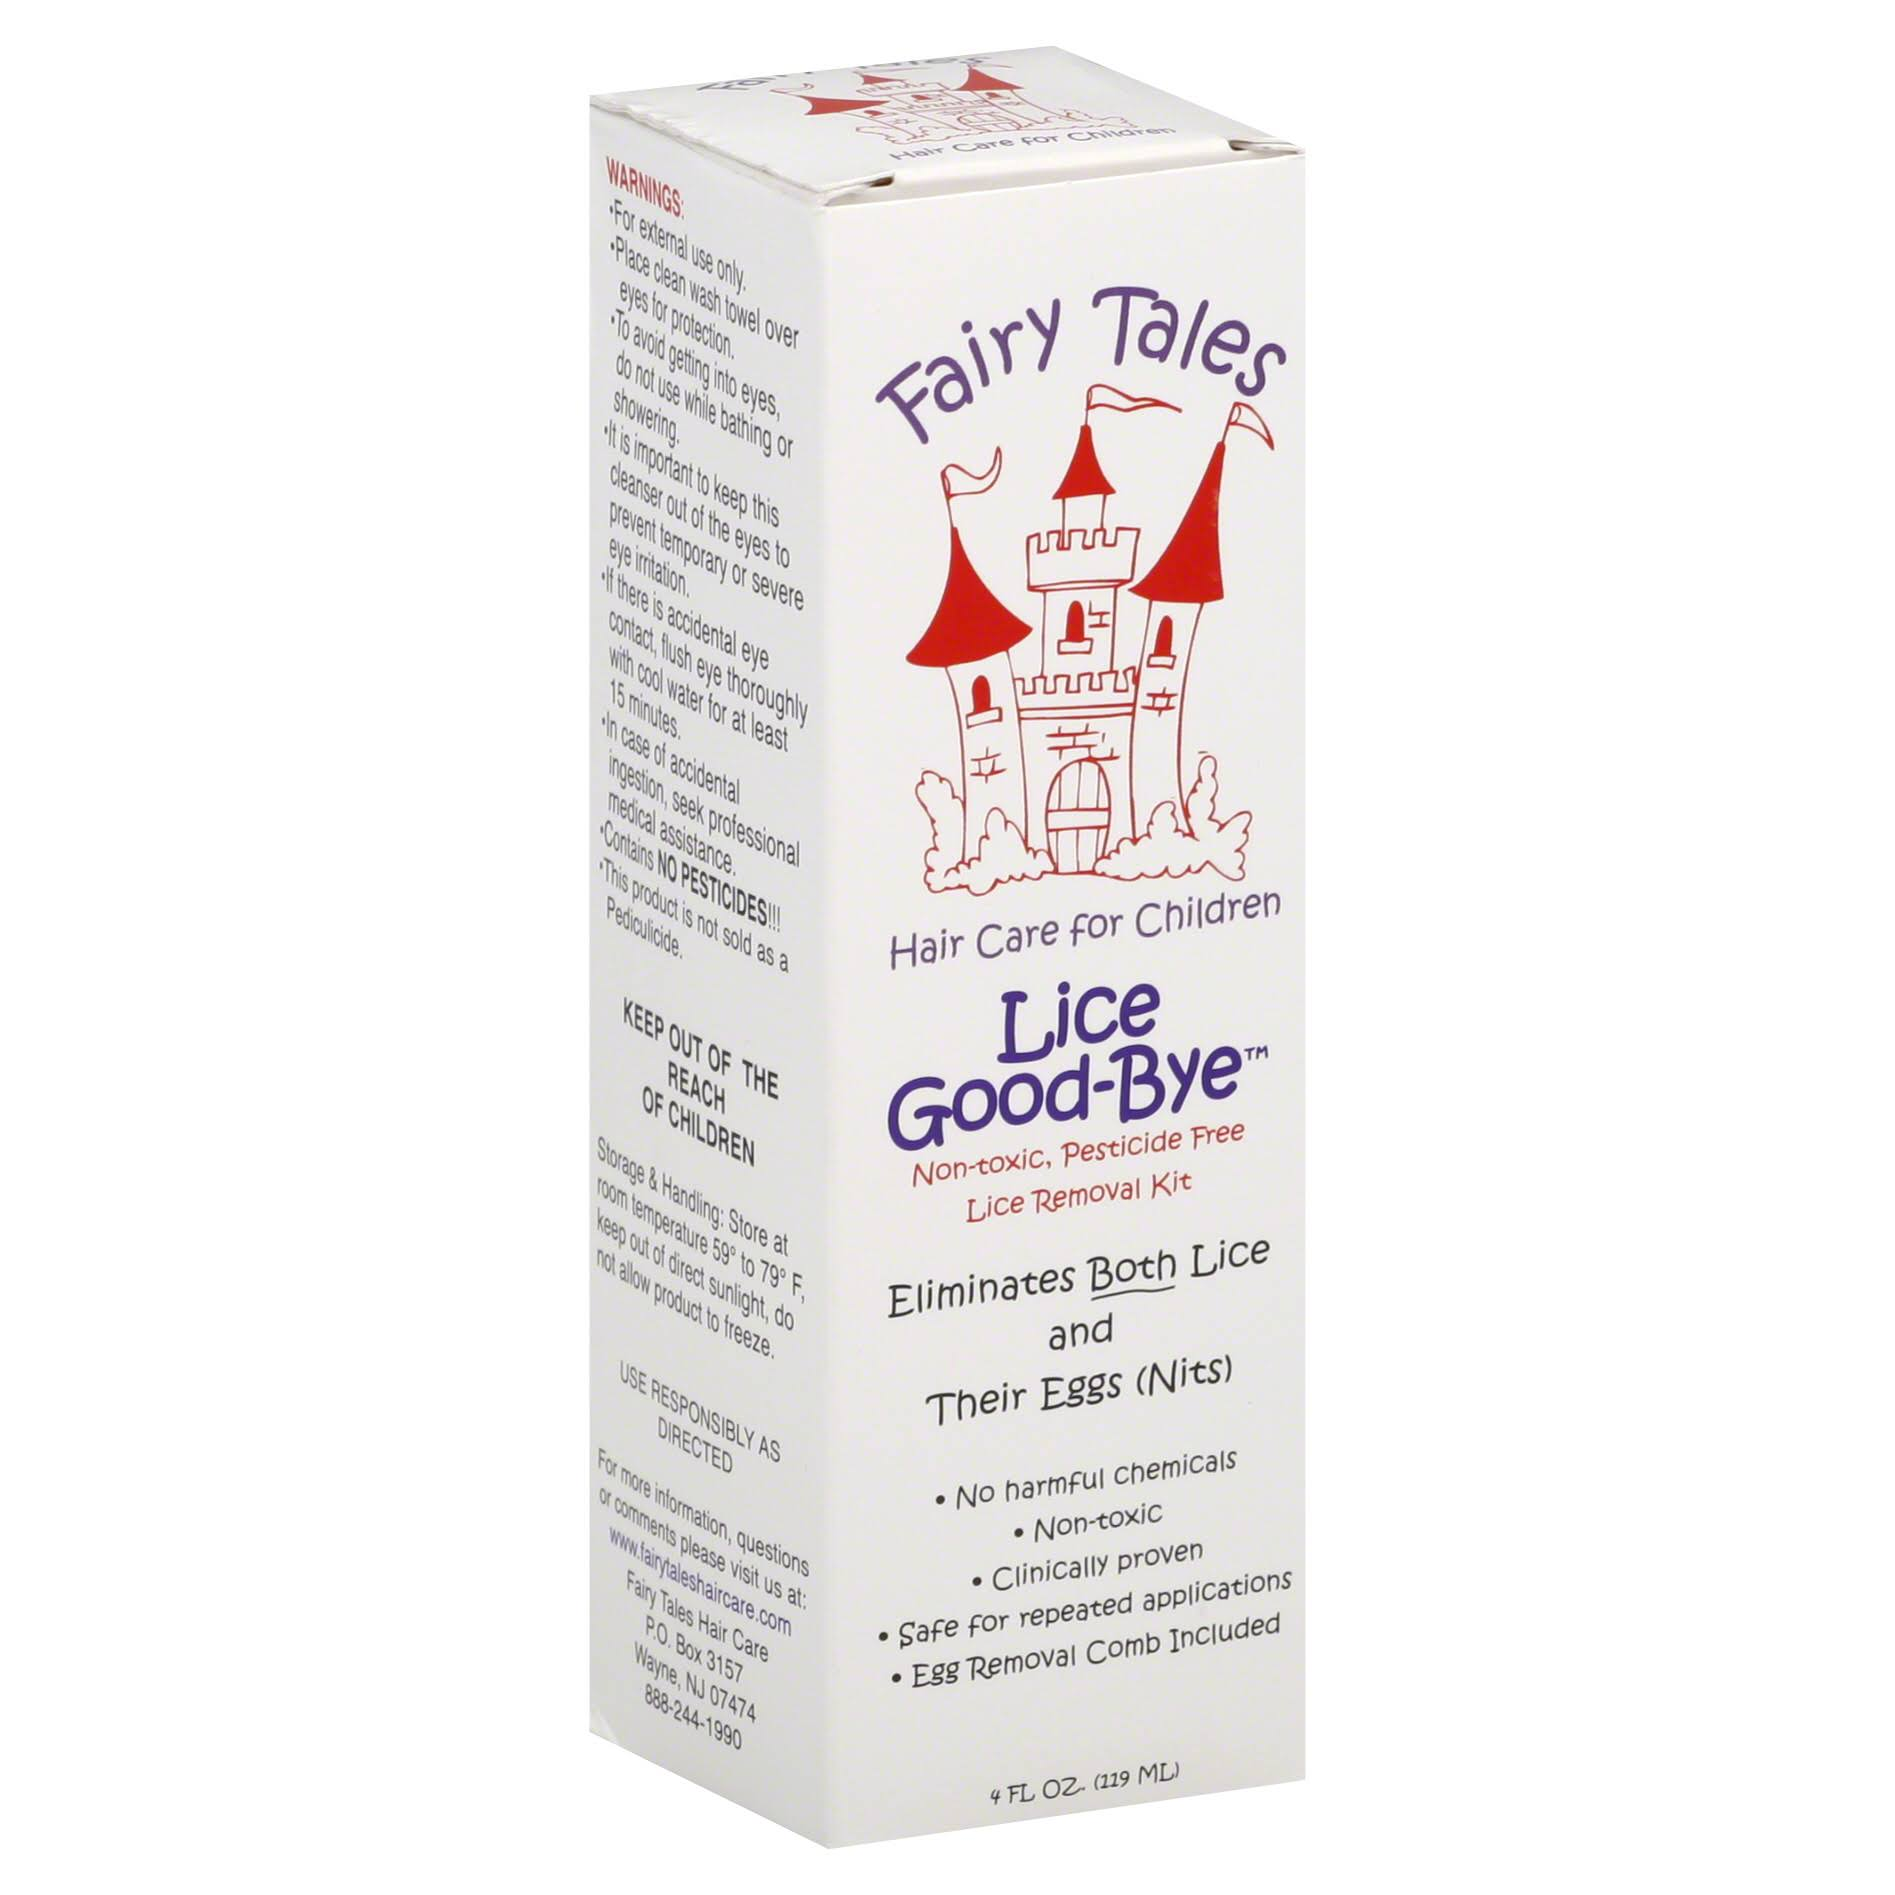 Fairy Tales Lice Good-Bye Removal Kit with Comb - 4oz